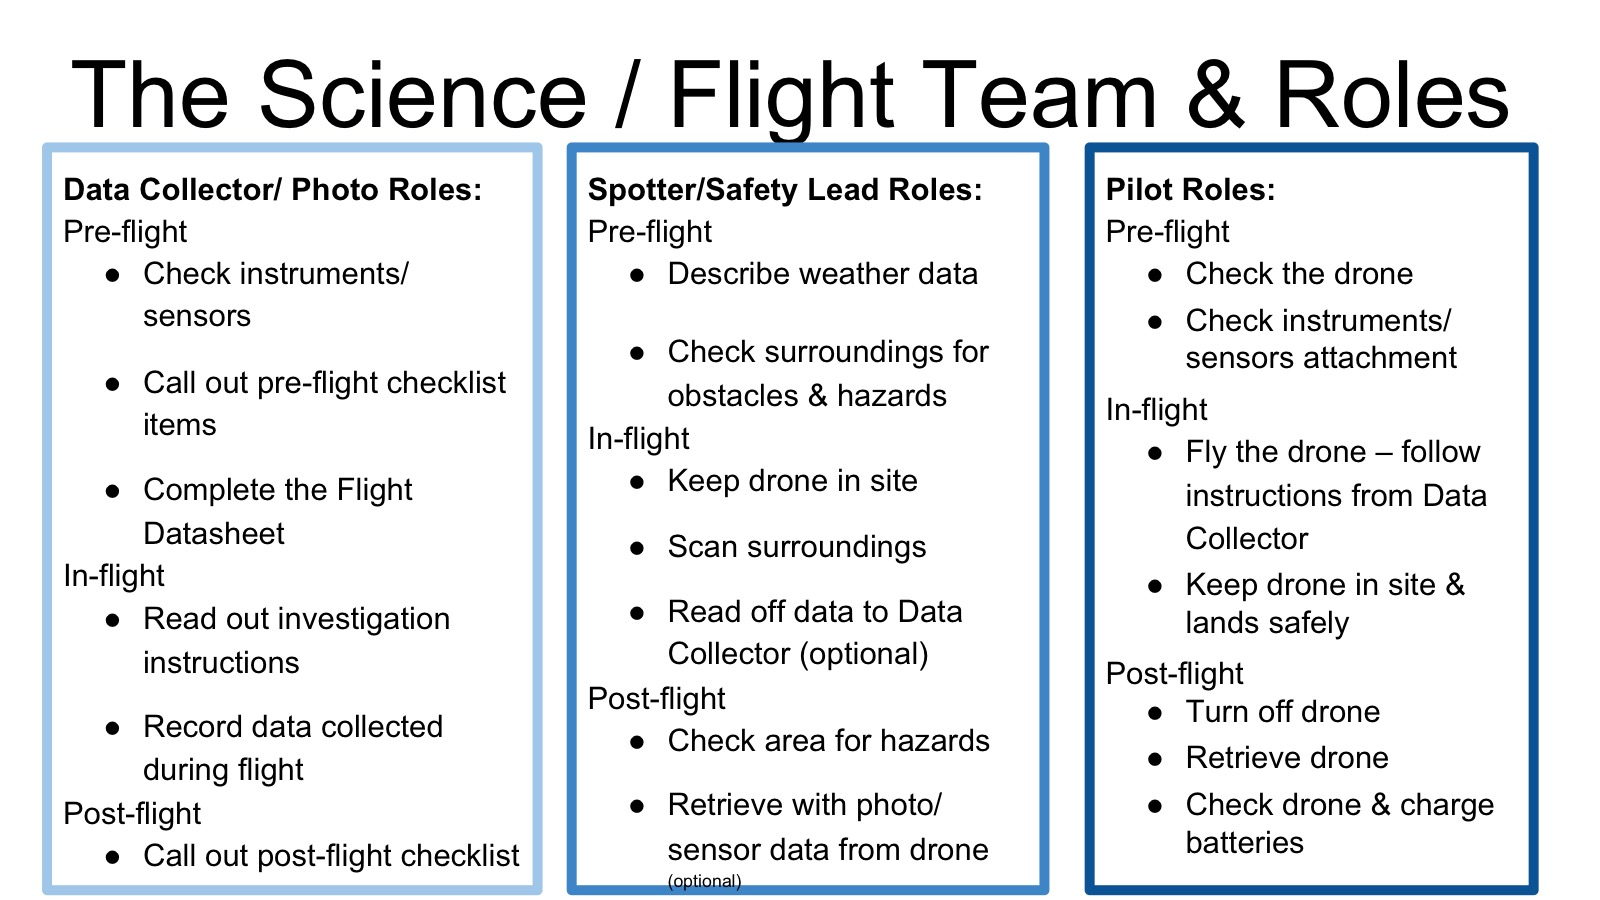 Science & flight team roles